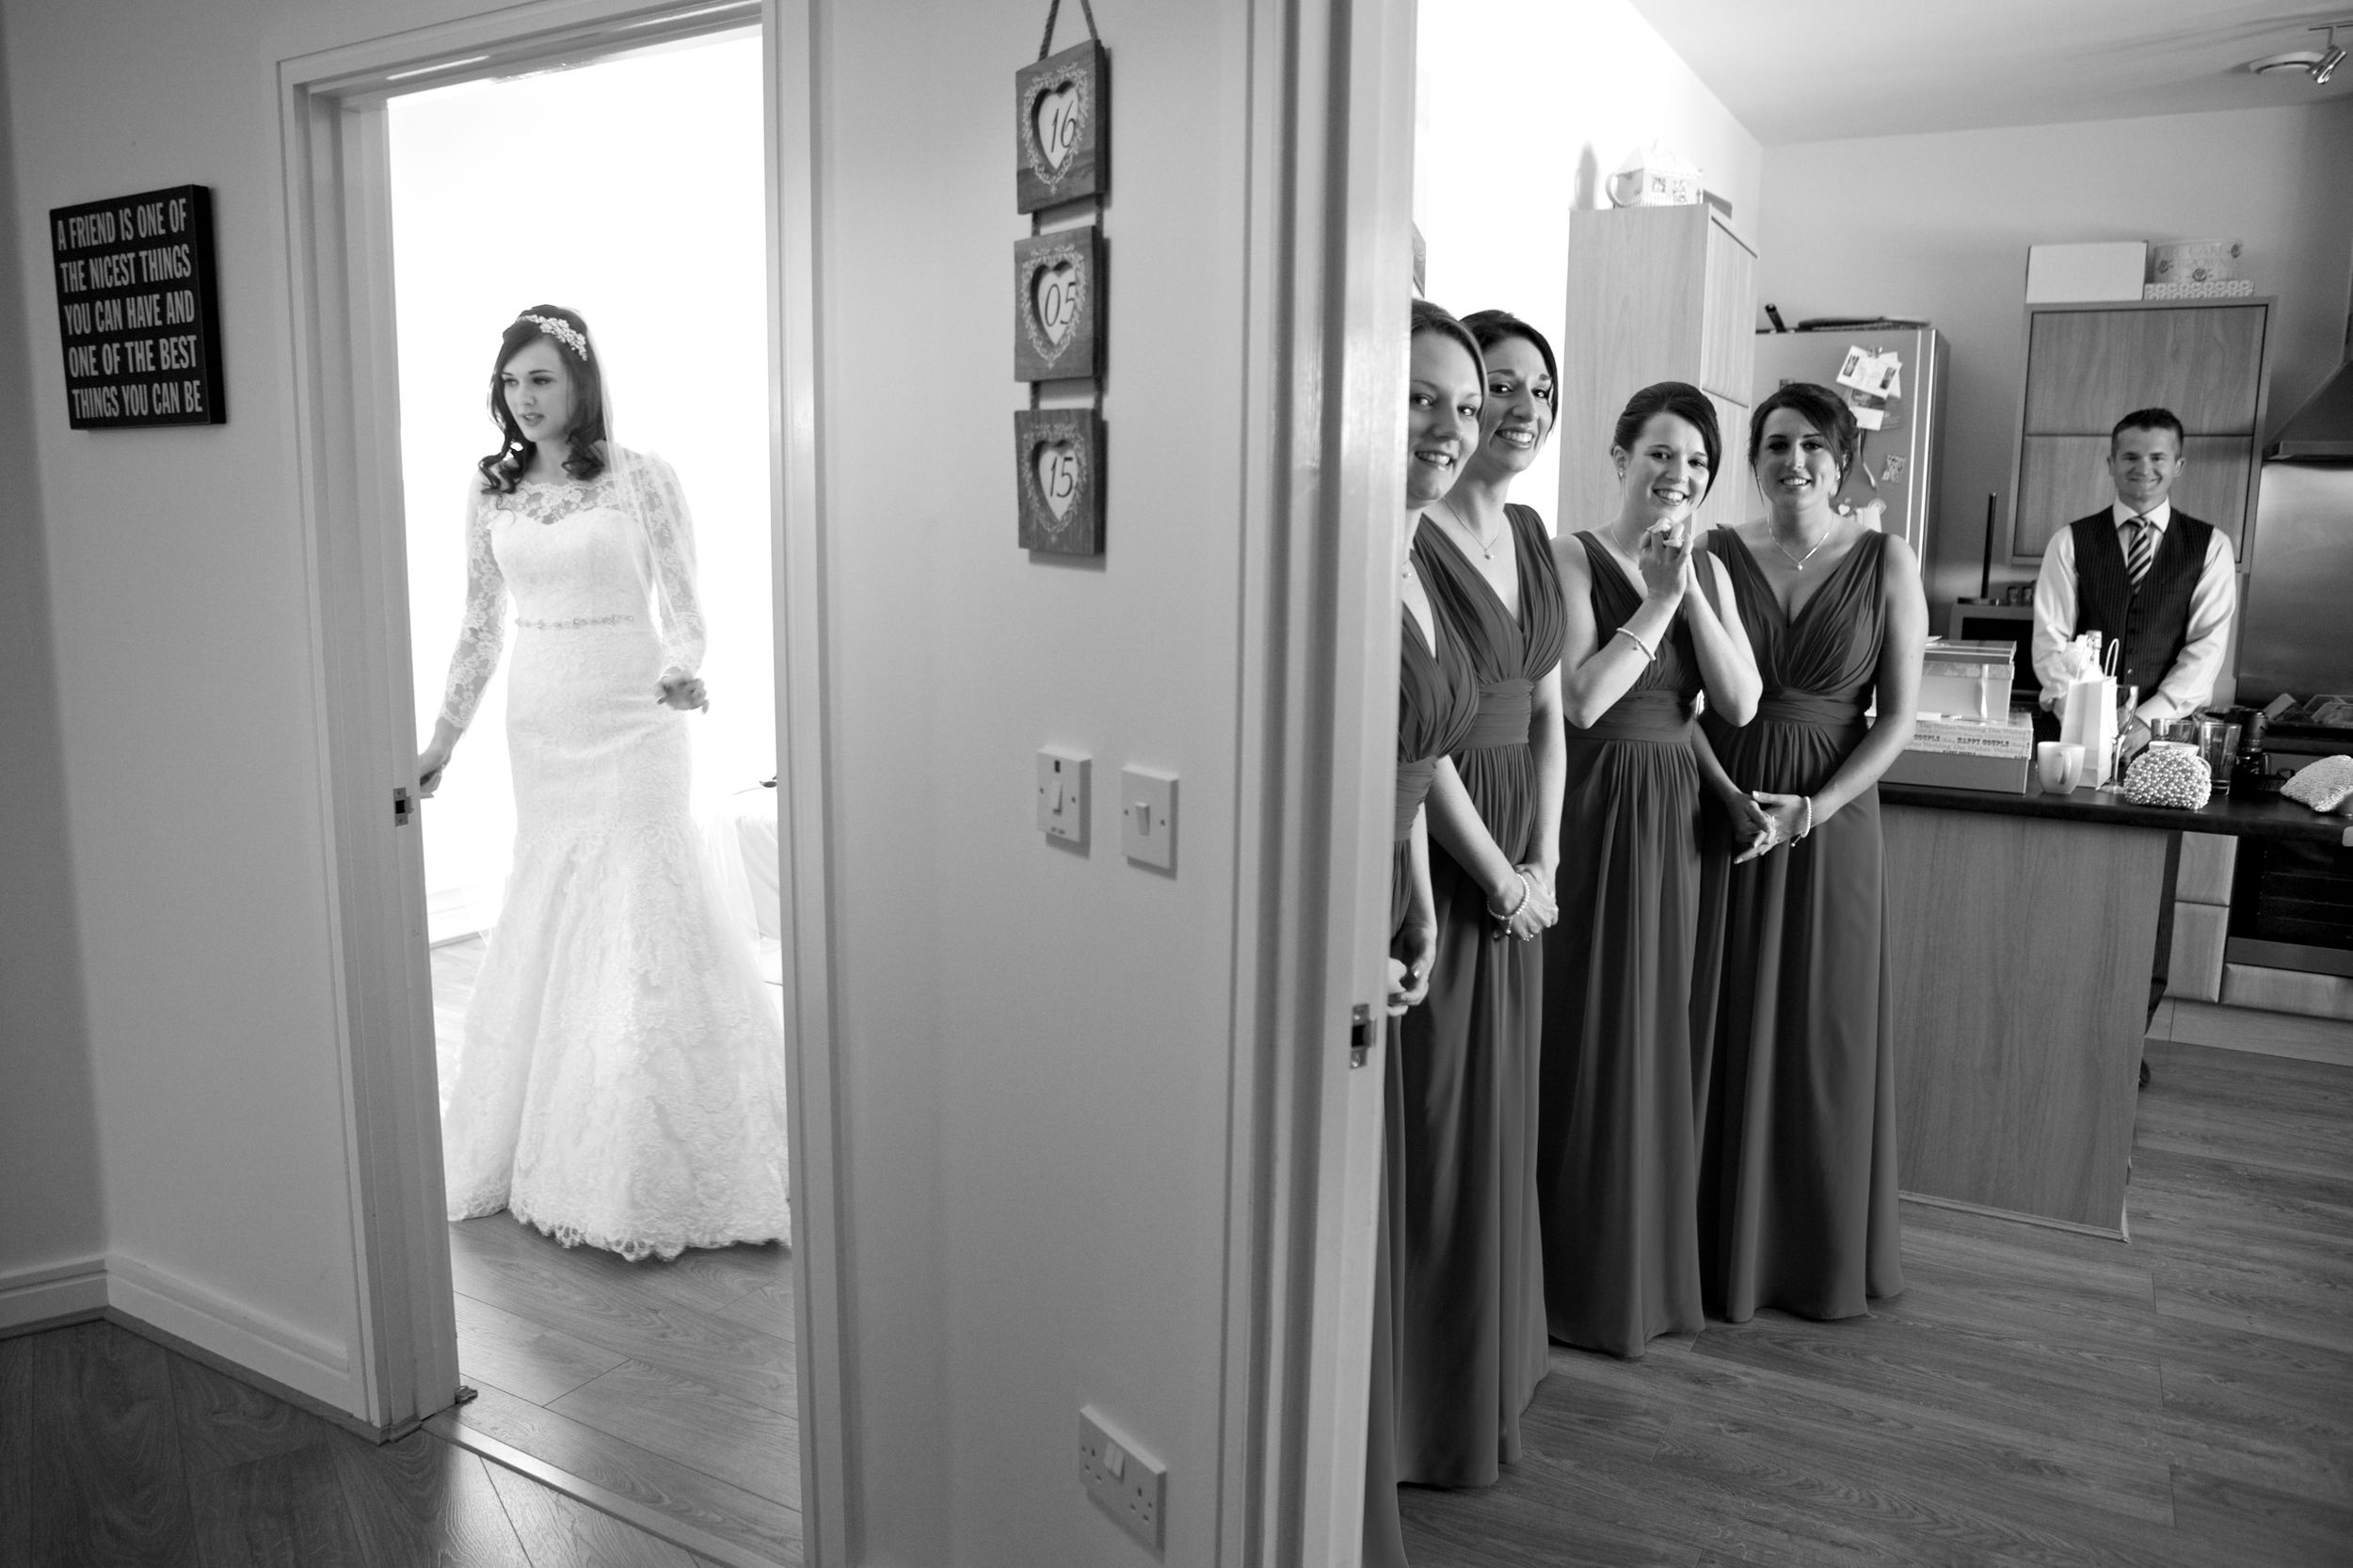 bride takes a last look in the mirror before the wedding ceremony while the bridesmaids wait to see her in her dress